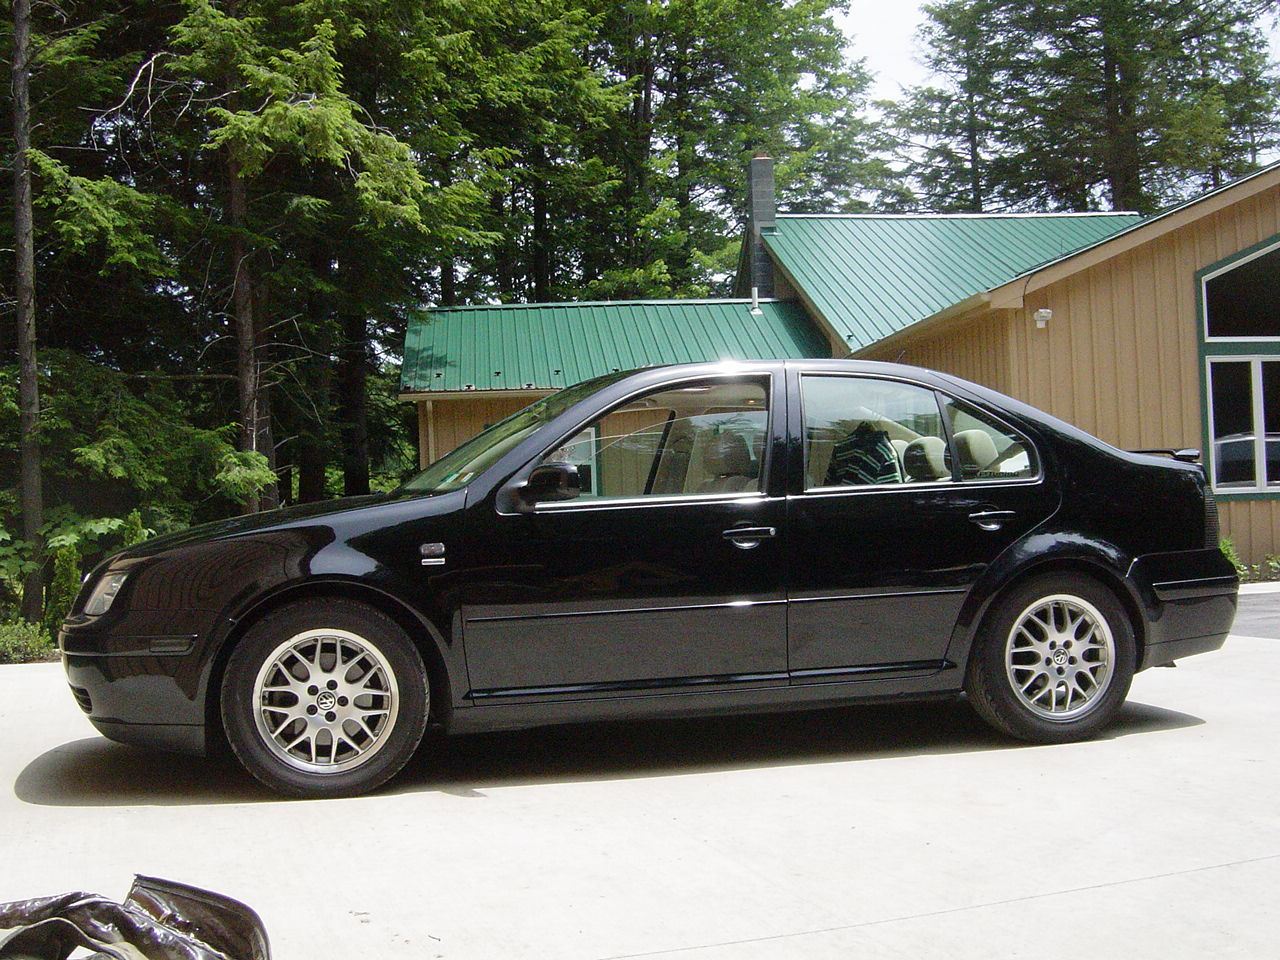 2001 volkswagen jetta information and photos zombiedrive 2001 volkswagen jetta 20 volkswagen jetta 20 sciox Image collections